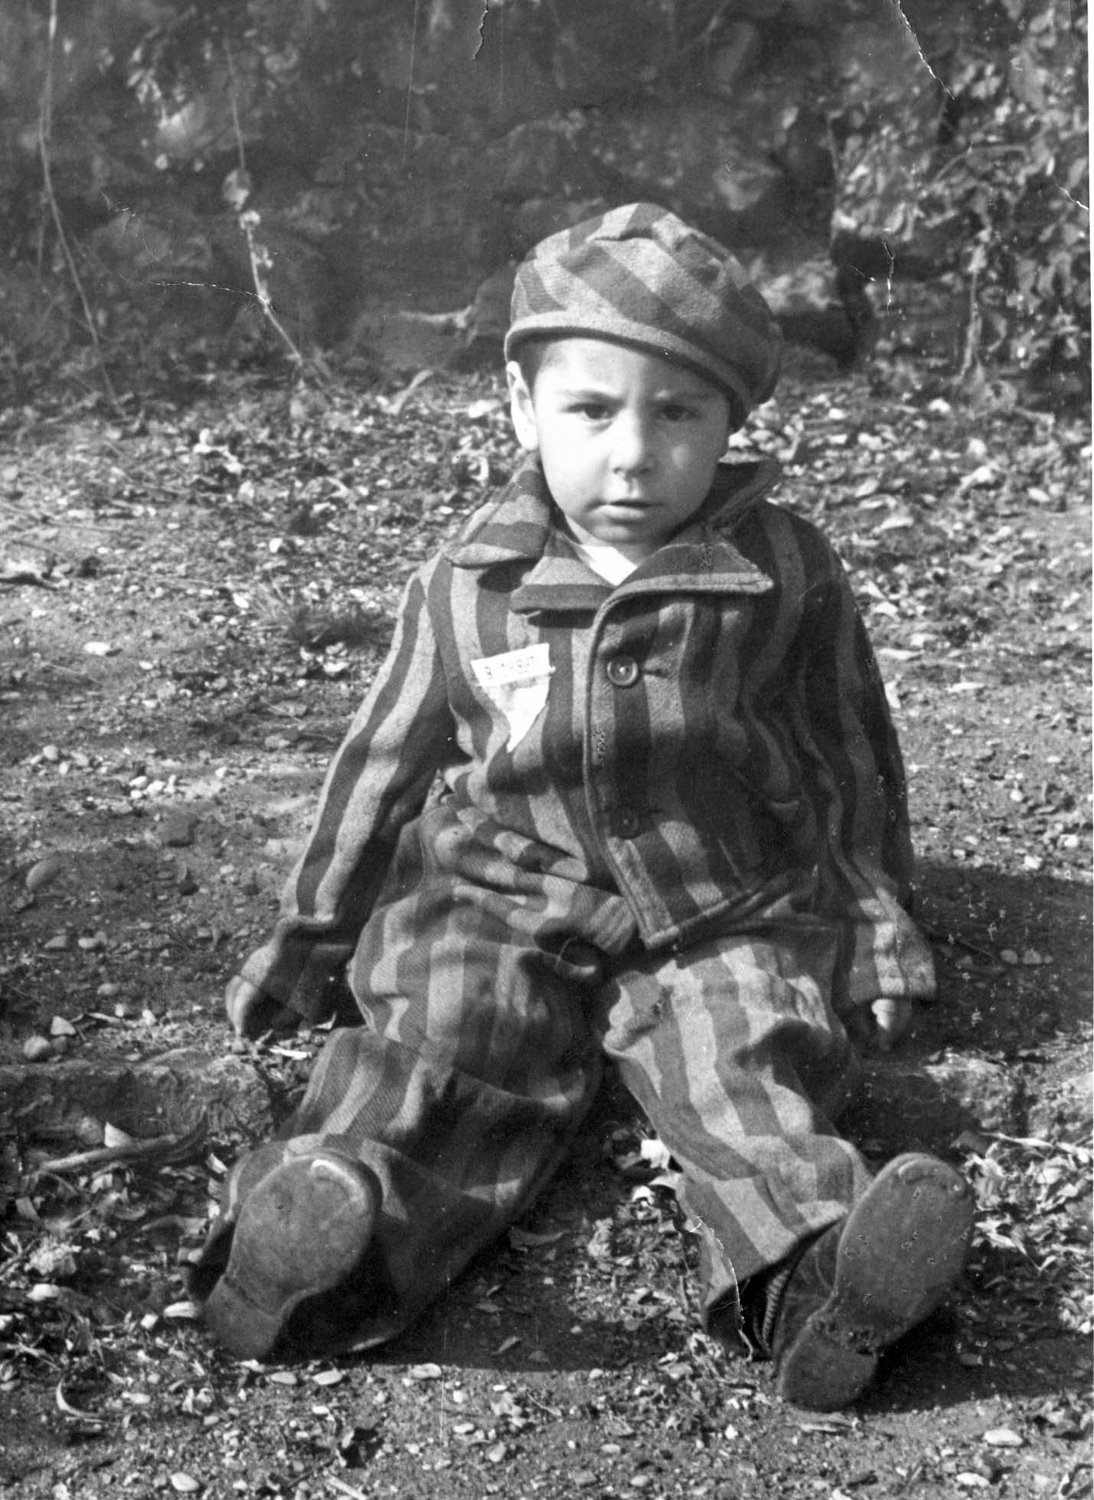 A boy wears a prisoner's uniform after the liberation of the Nazi death camp Auschwitz-Birkenau in 1945 in Oswiecim, Poland. Historians estimate that the Nazis sent at least 1.3 million people to Auschwitz between 1940-45, and it is believed that some 1.1 million of those perished there. Auschwitz was liberated by the Russian Army Jan. 27, 1945.